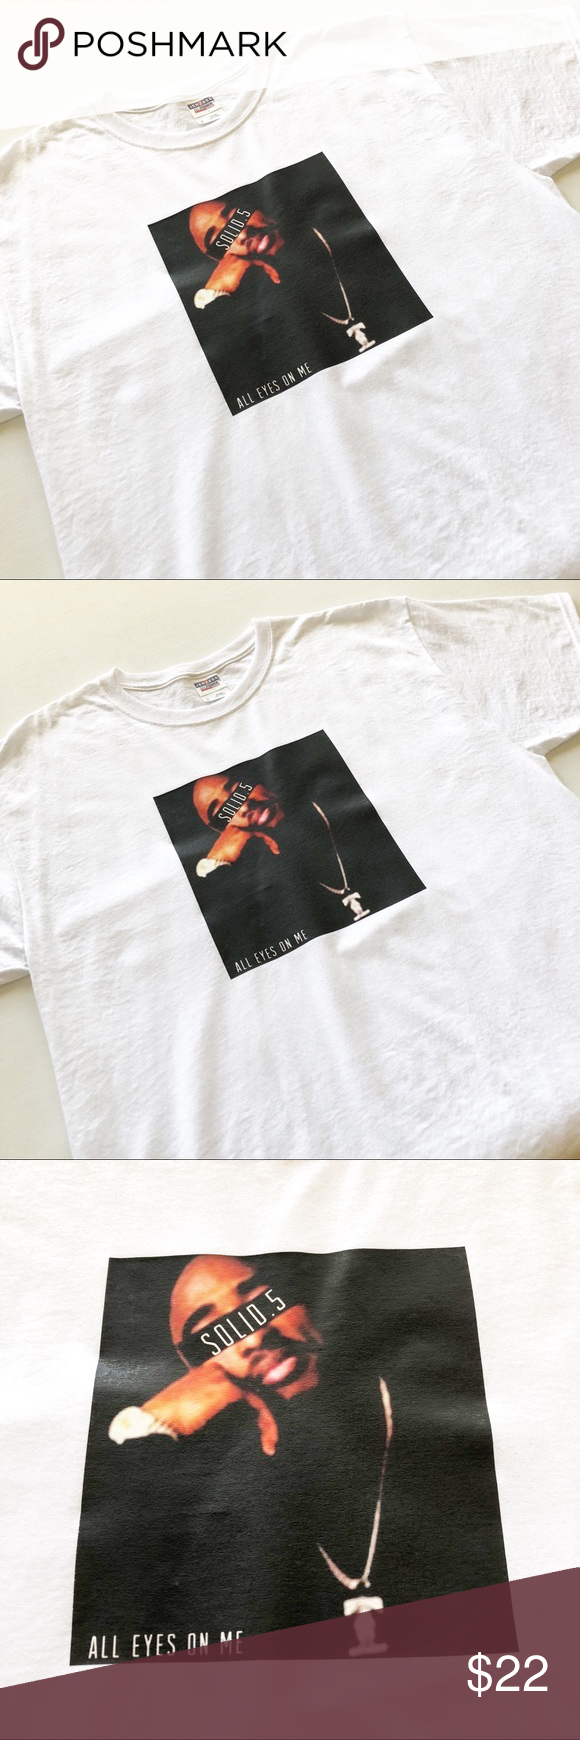 e5862a7673 New Tupac Shakur Graphic Tee Men's Tupac Shakur T-Shirt Size: Large SOLID.5  / ALL EYES ON ME Graphics Short Sleeves / Crew Neck NEW Without Tags!